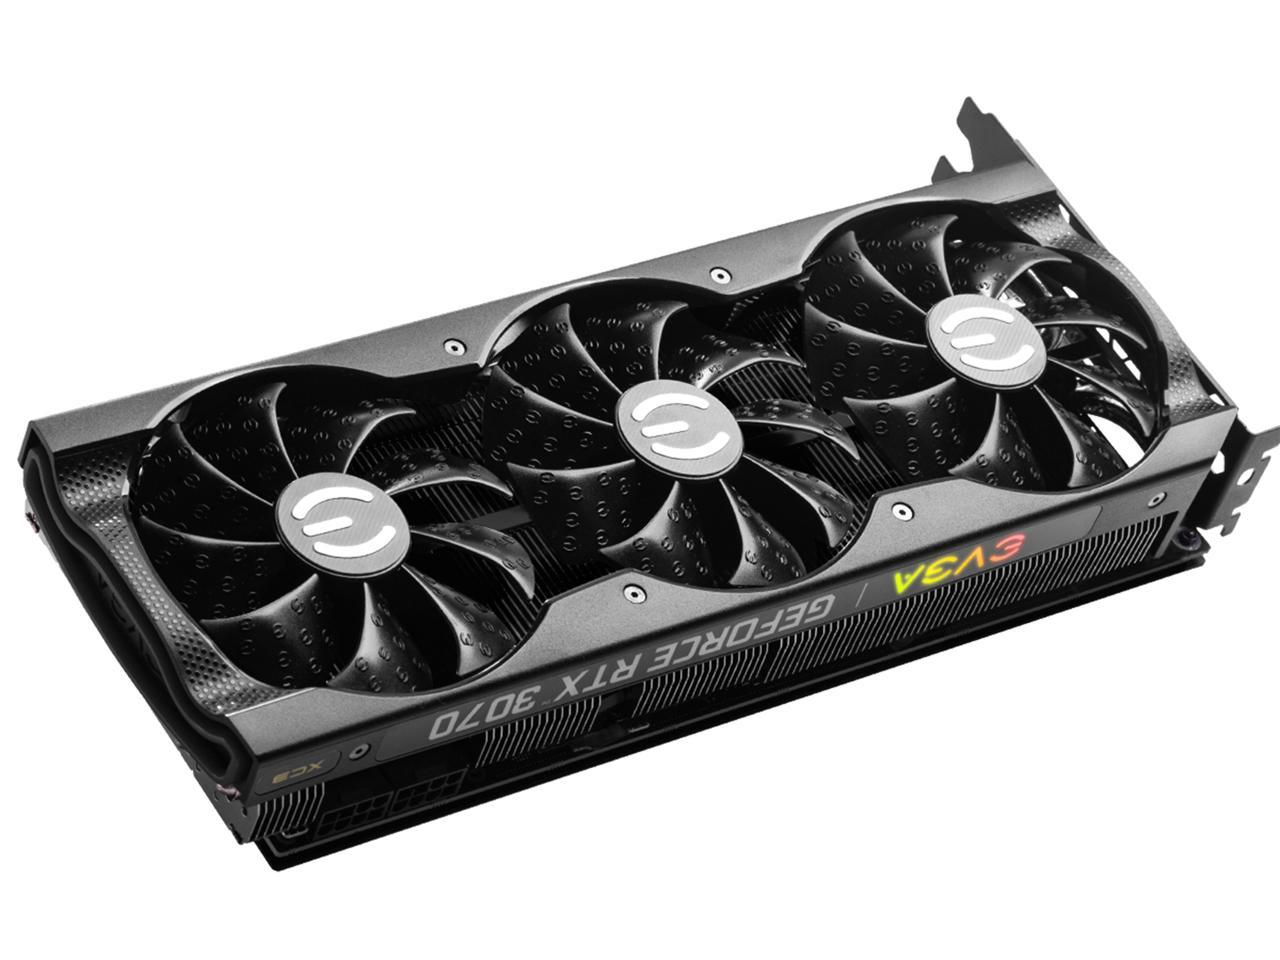 EVGA Video Card  GeForce RTX 3070 XC3 ULTRA 8GB GDDR6 iCX3 Cooling ARGB + 550w PSU EVGA Bundle INSTOCK